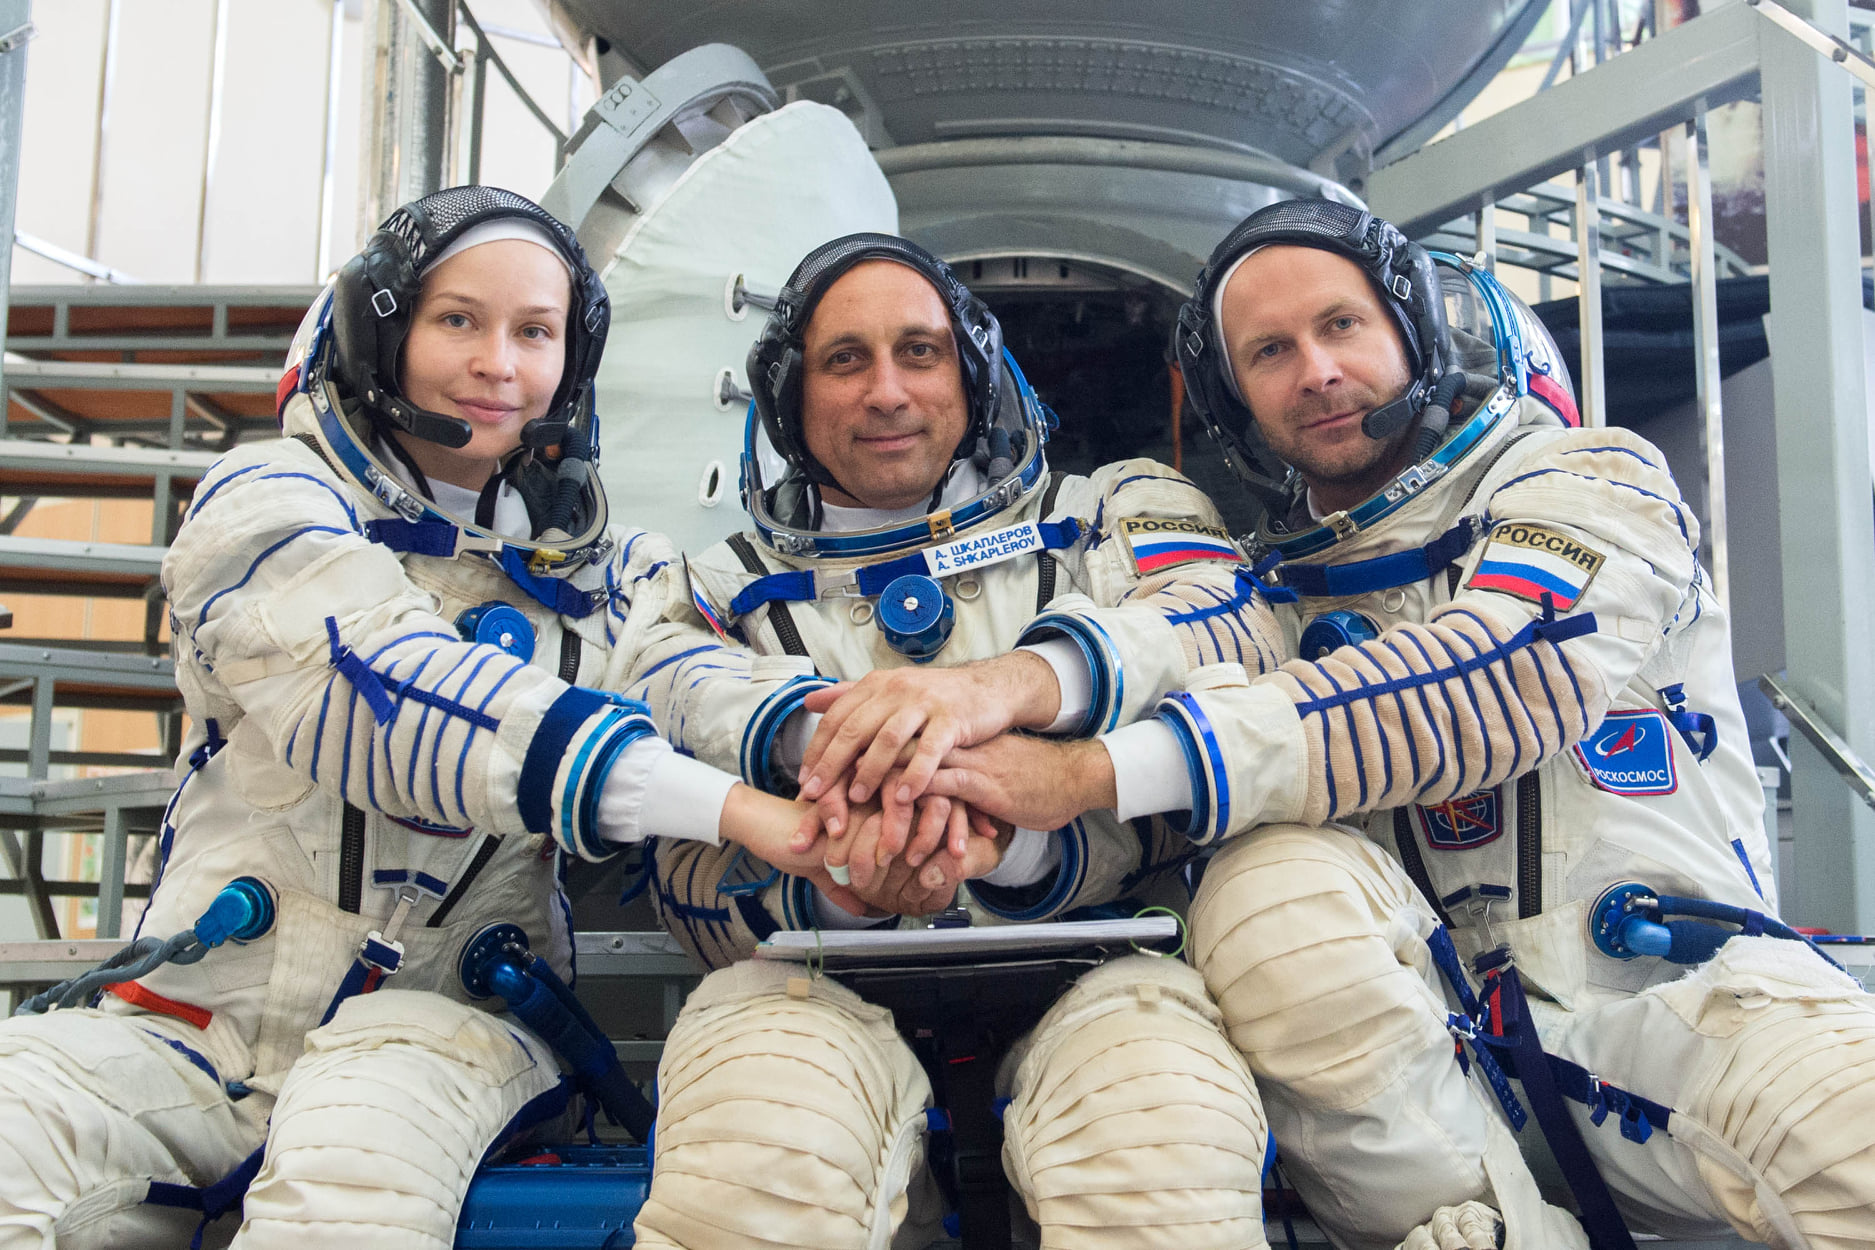 Actor Yulia Peresild (left), cosmonaut Anton Shkaplerov (center) and director Klim Shipenko (right) are scheduled to launch toward the International Space Station on Oct. 5, 2021.